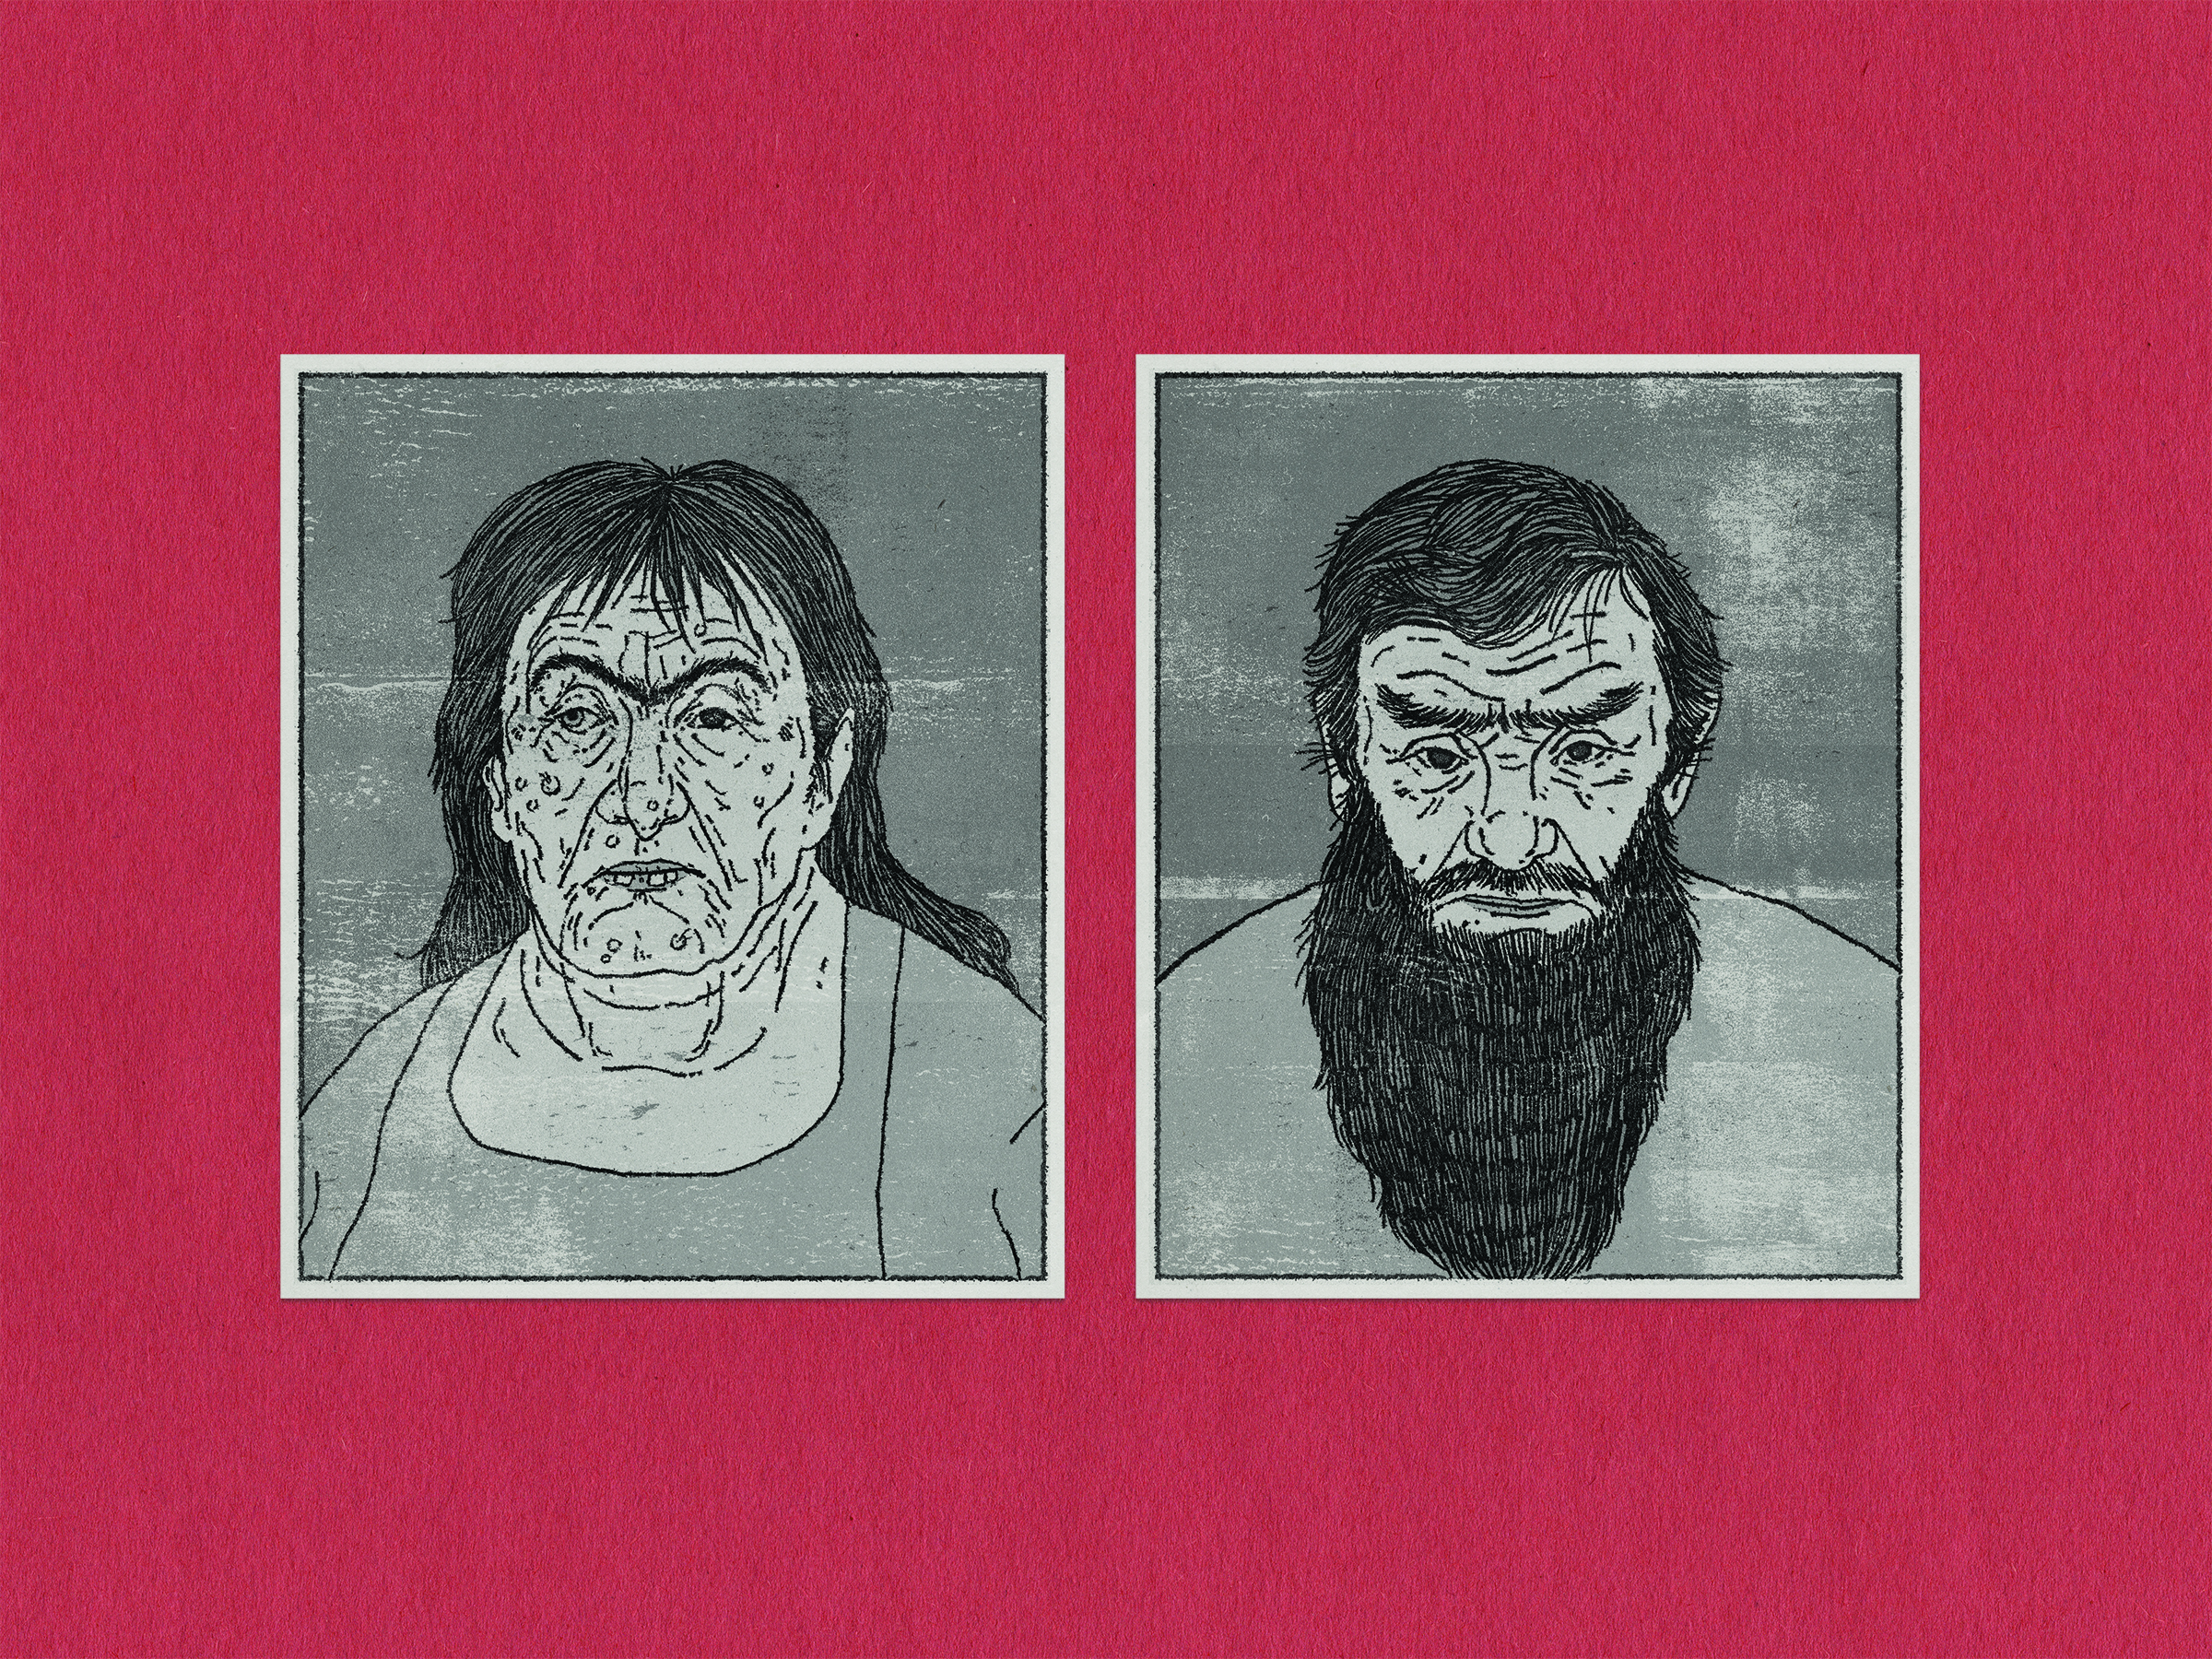 Portraits of The Twits